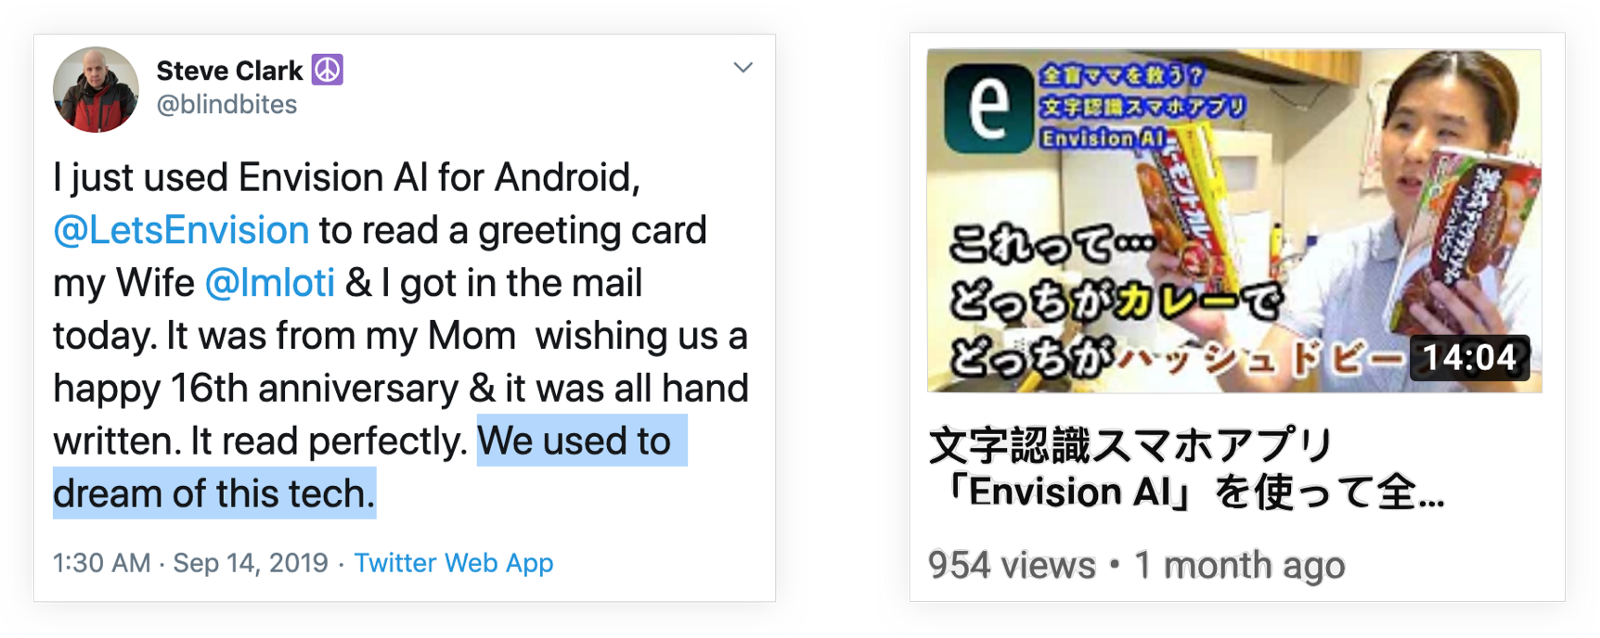 Screenshot of a tweet from Steve Clark (linked above) and screenshot of a YouTube video be a Japanese user.